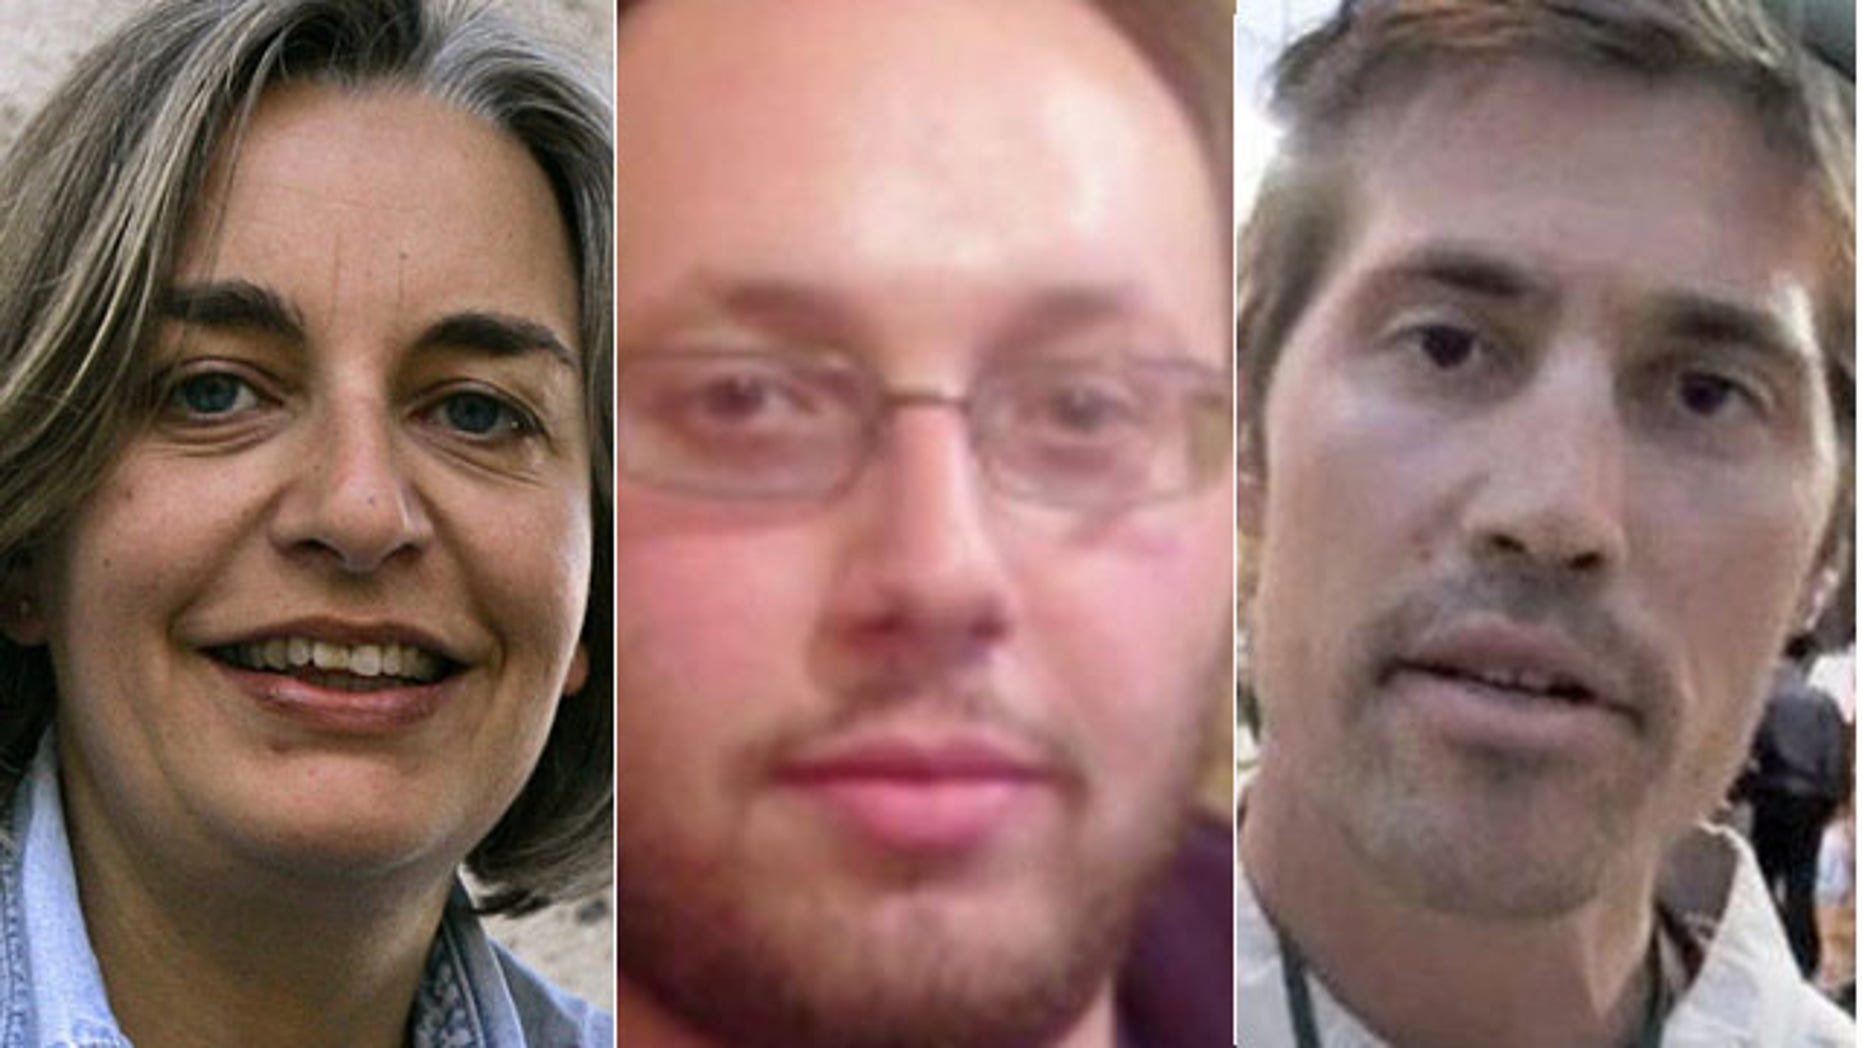 These photos show, from left, Associated Press photographer Anja Niedringhaus, and freelance journalists Steven Sotloff and James Foley, all of whom were killed on assignment in 2014 Niedringhaus was shot while covering Afghanistan's presidential election, while Sotloff and Foley were beheaded by the ISIS terror group in Syria. (AP Photo/Peter Dejong, File)